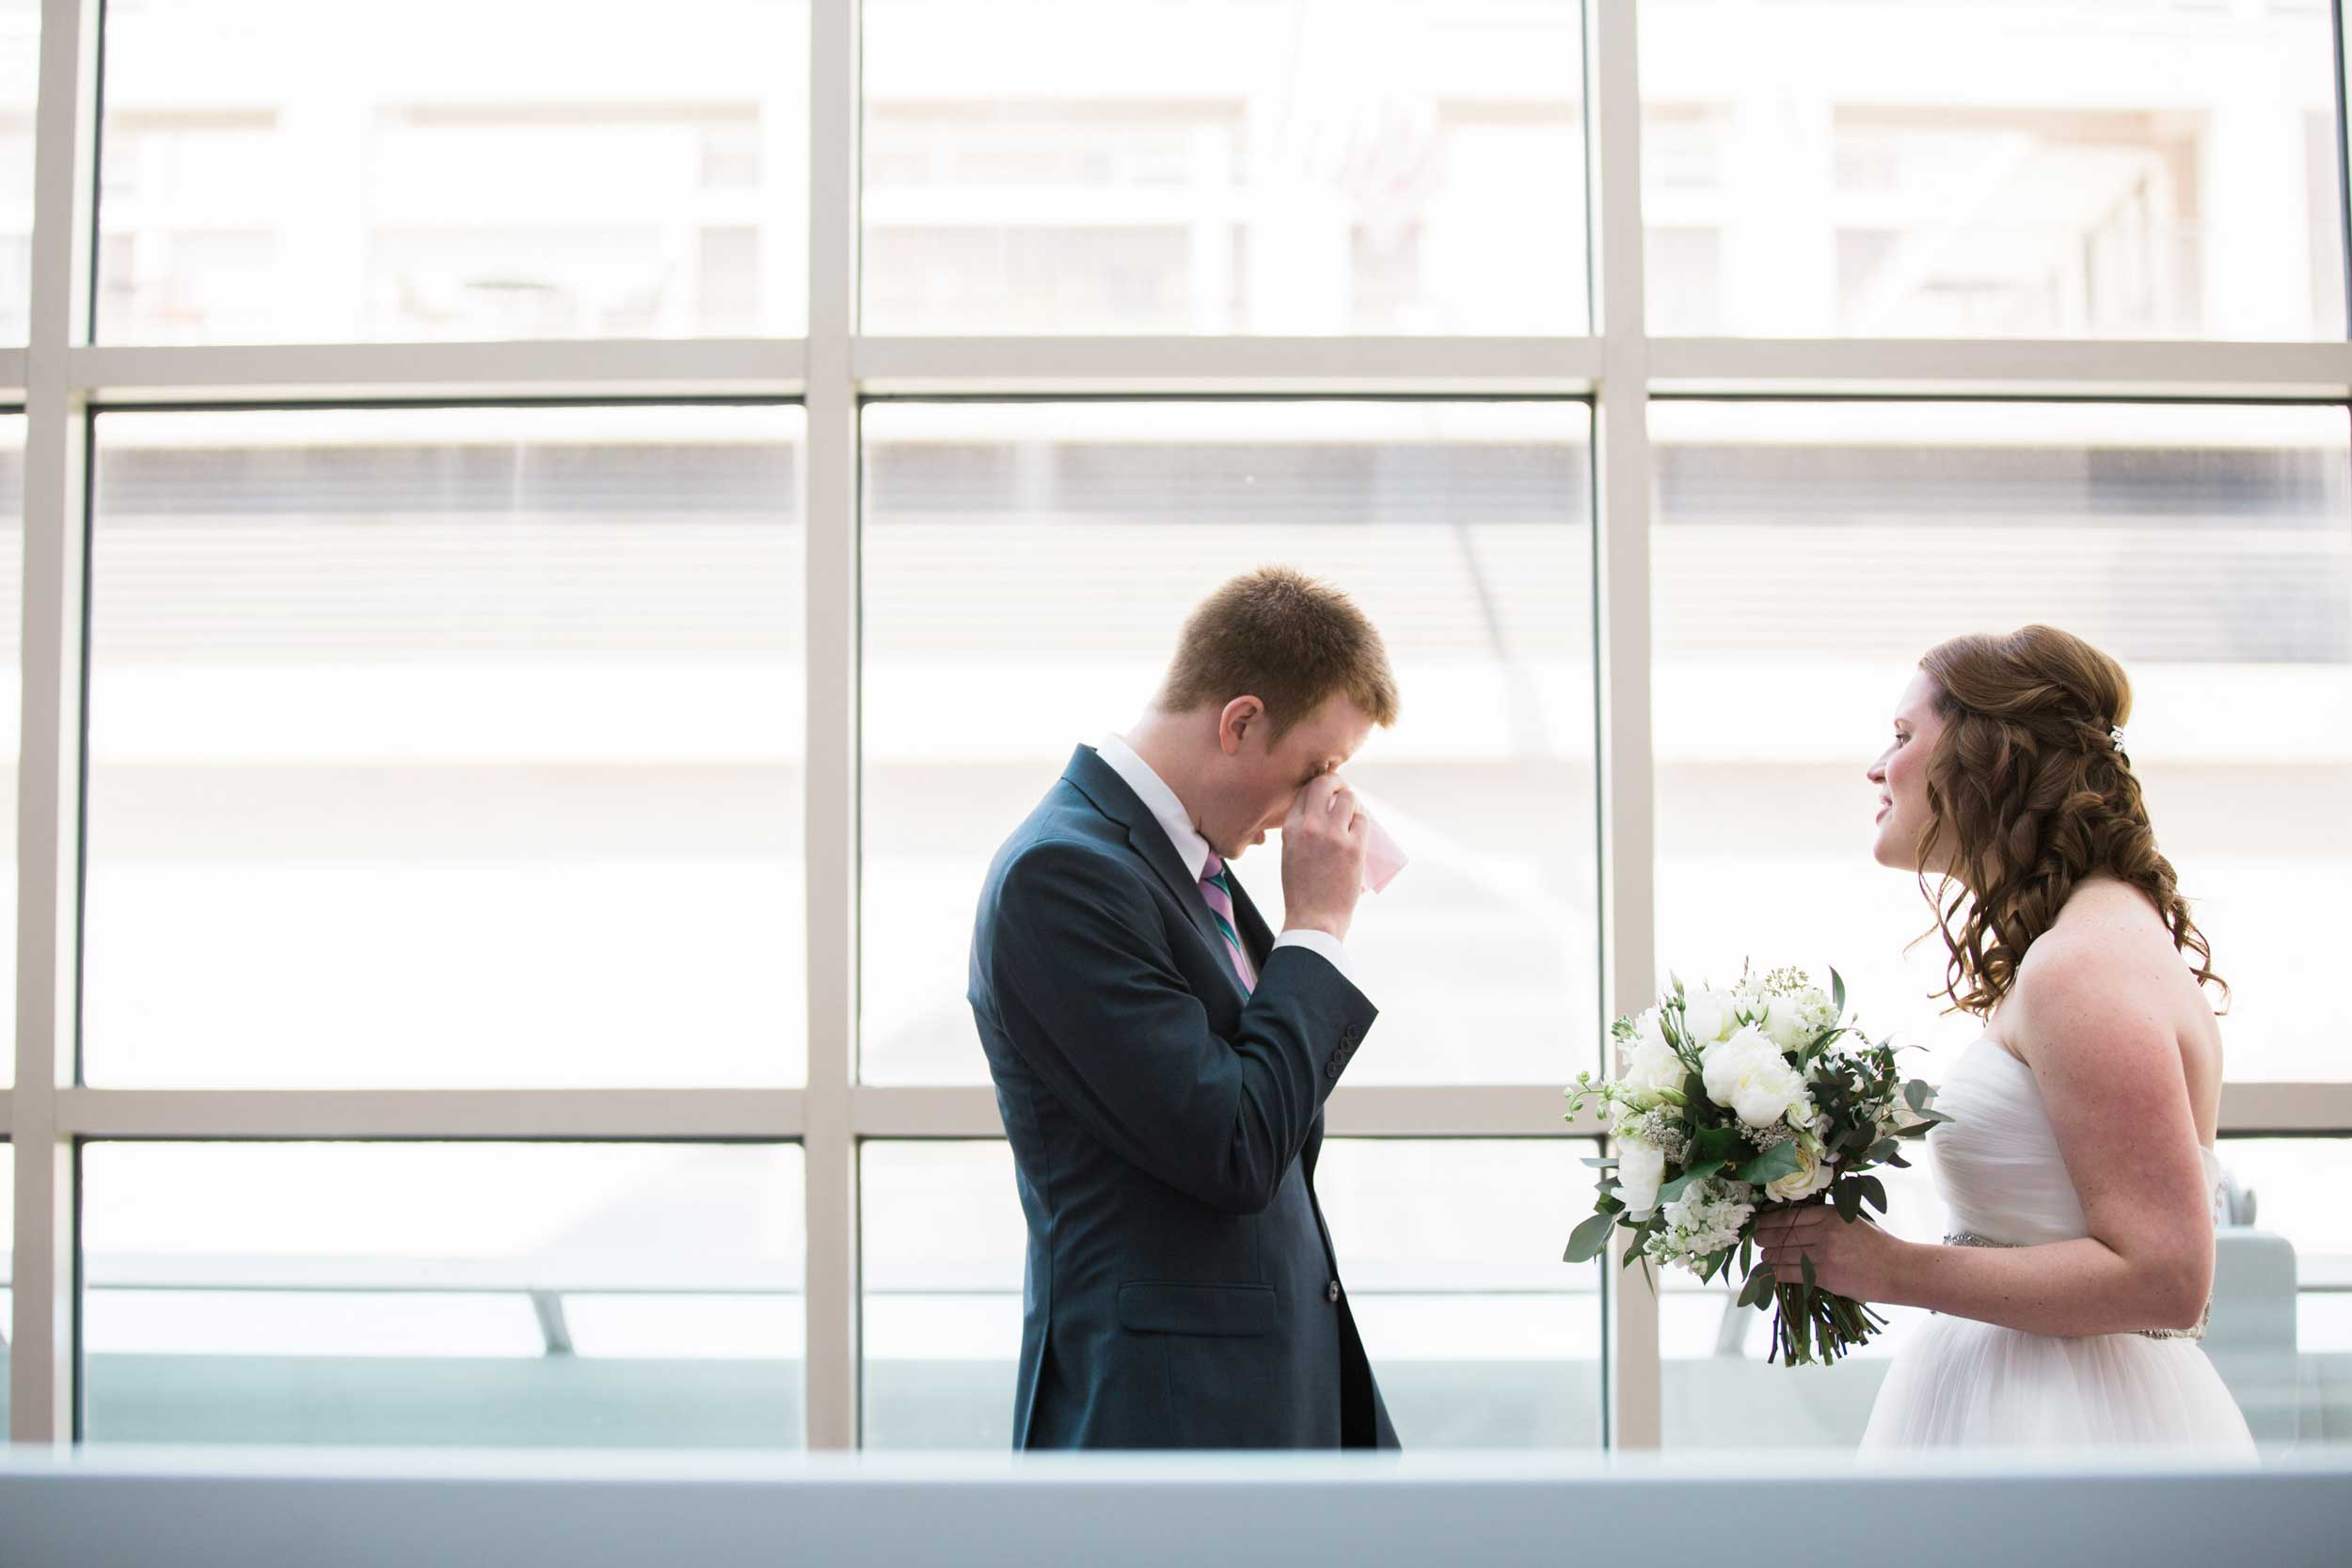 Groom's reaction at The First Look.